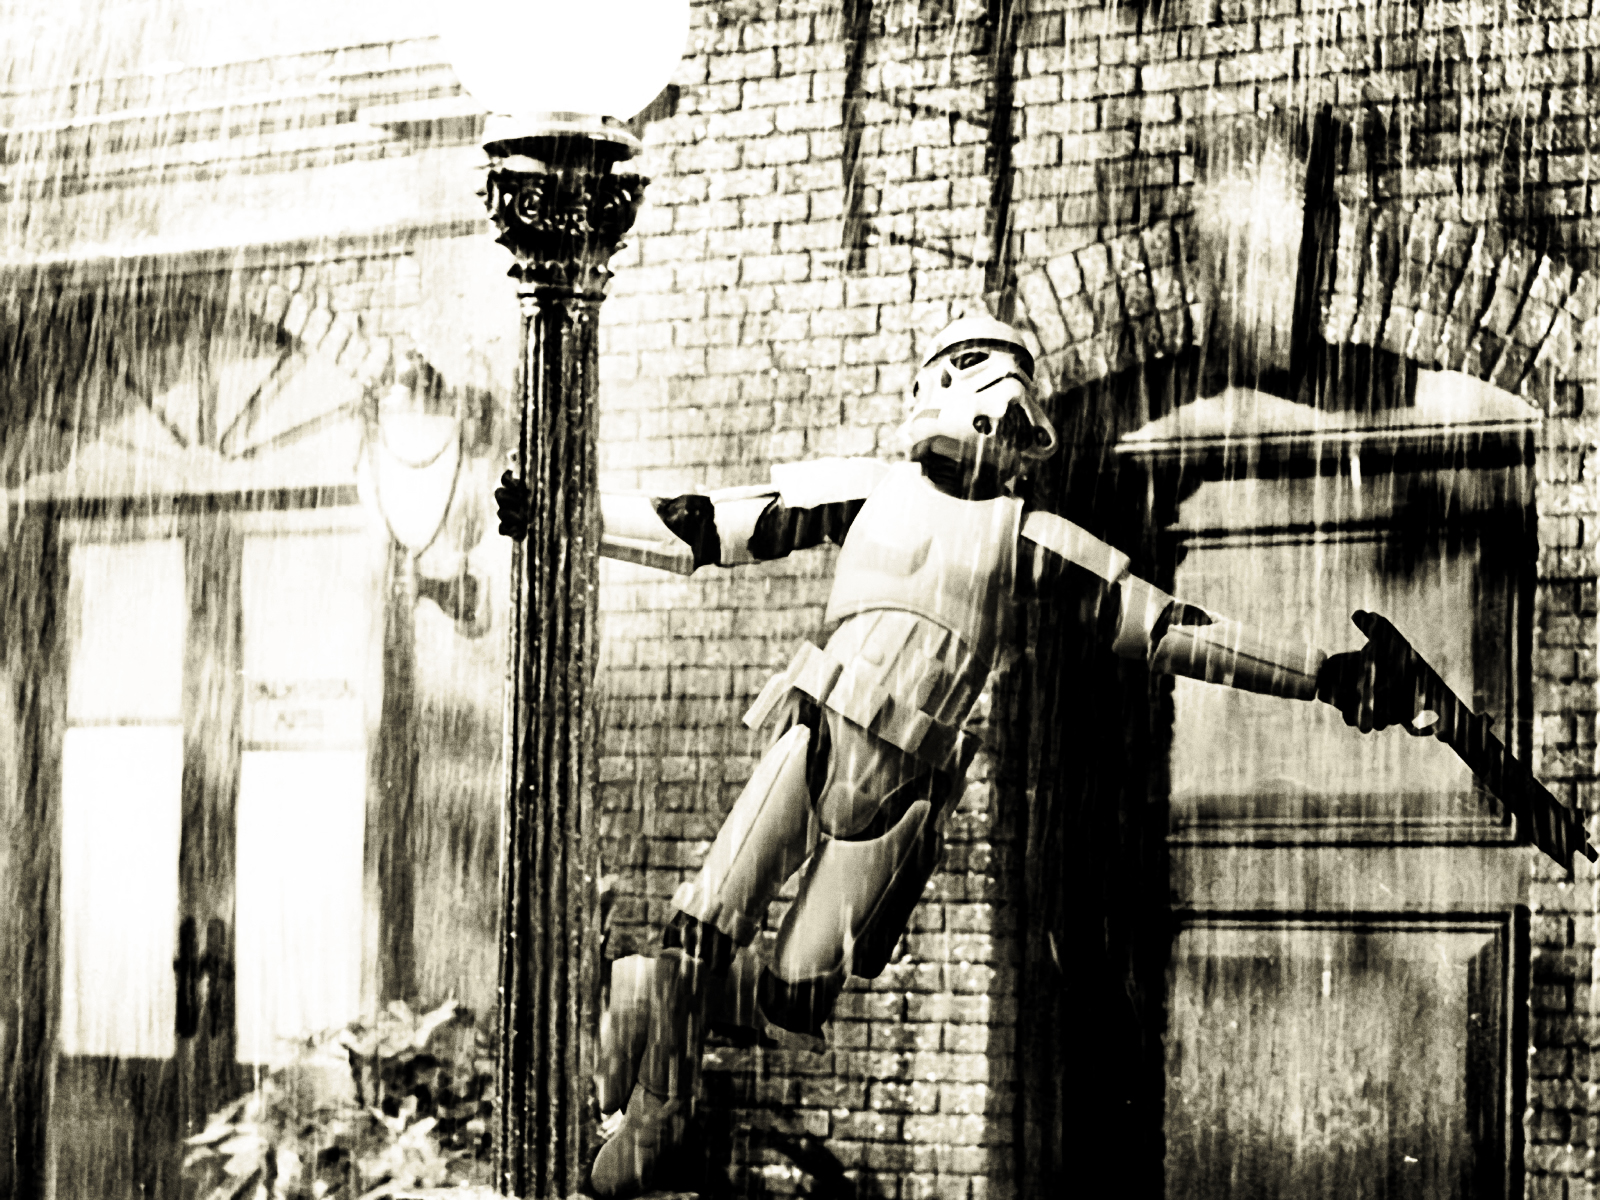 Star wars funny wallpaper stormtrooper singing in the rain